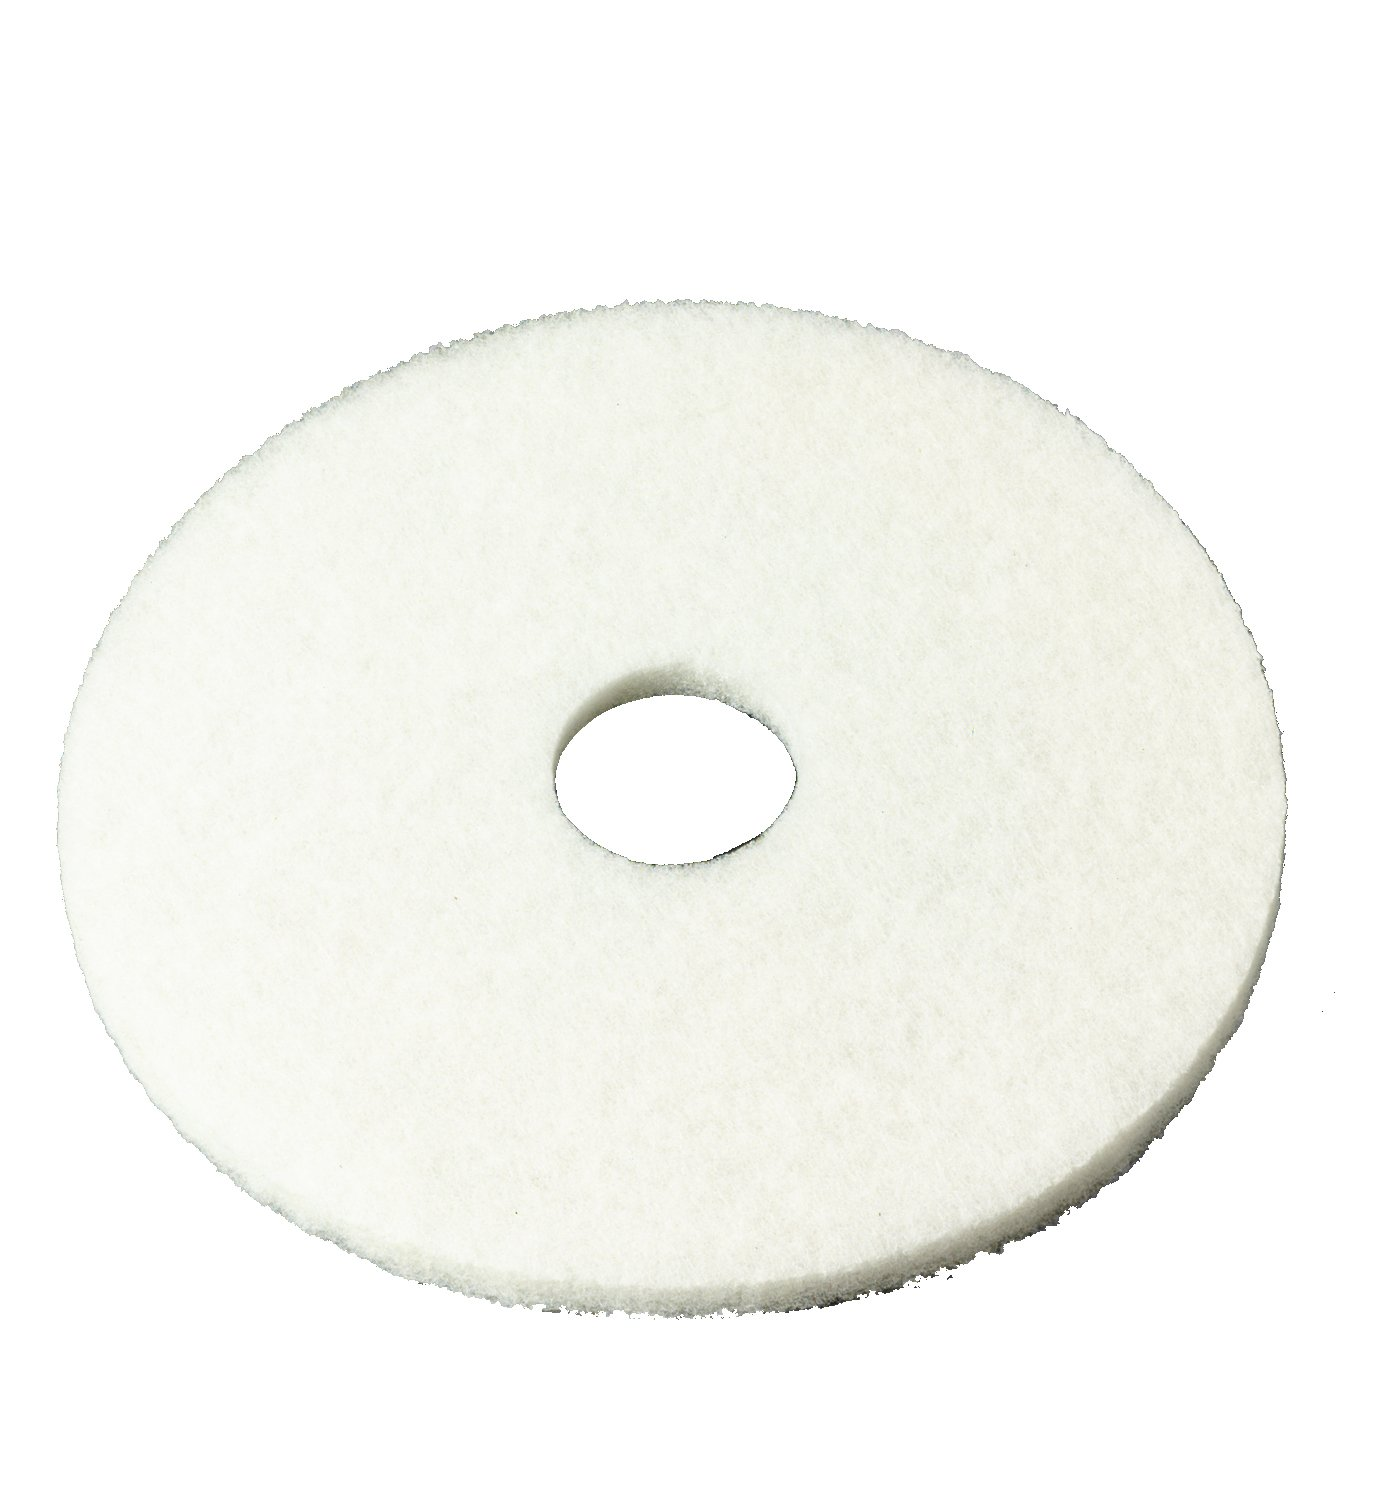 3M 4100 Series White Super Polish Pad, 11'' (Case of 5) by 3M